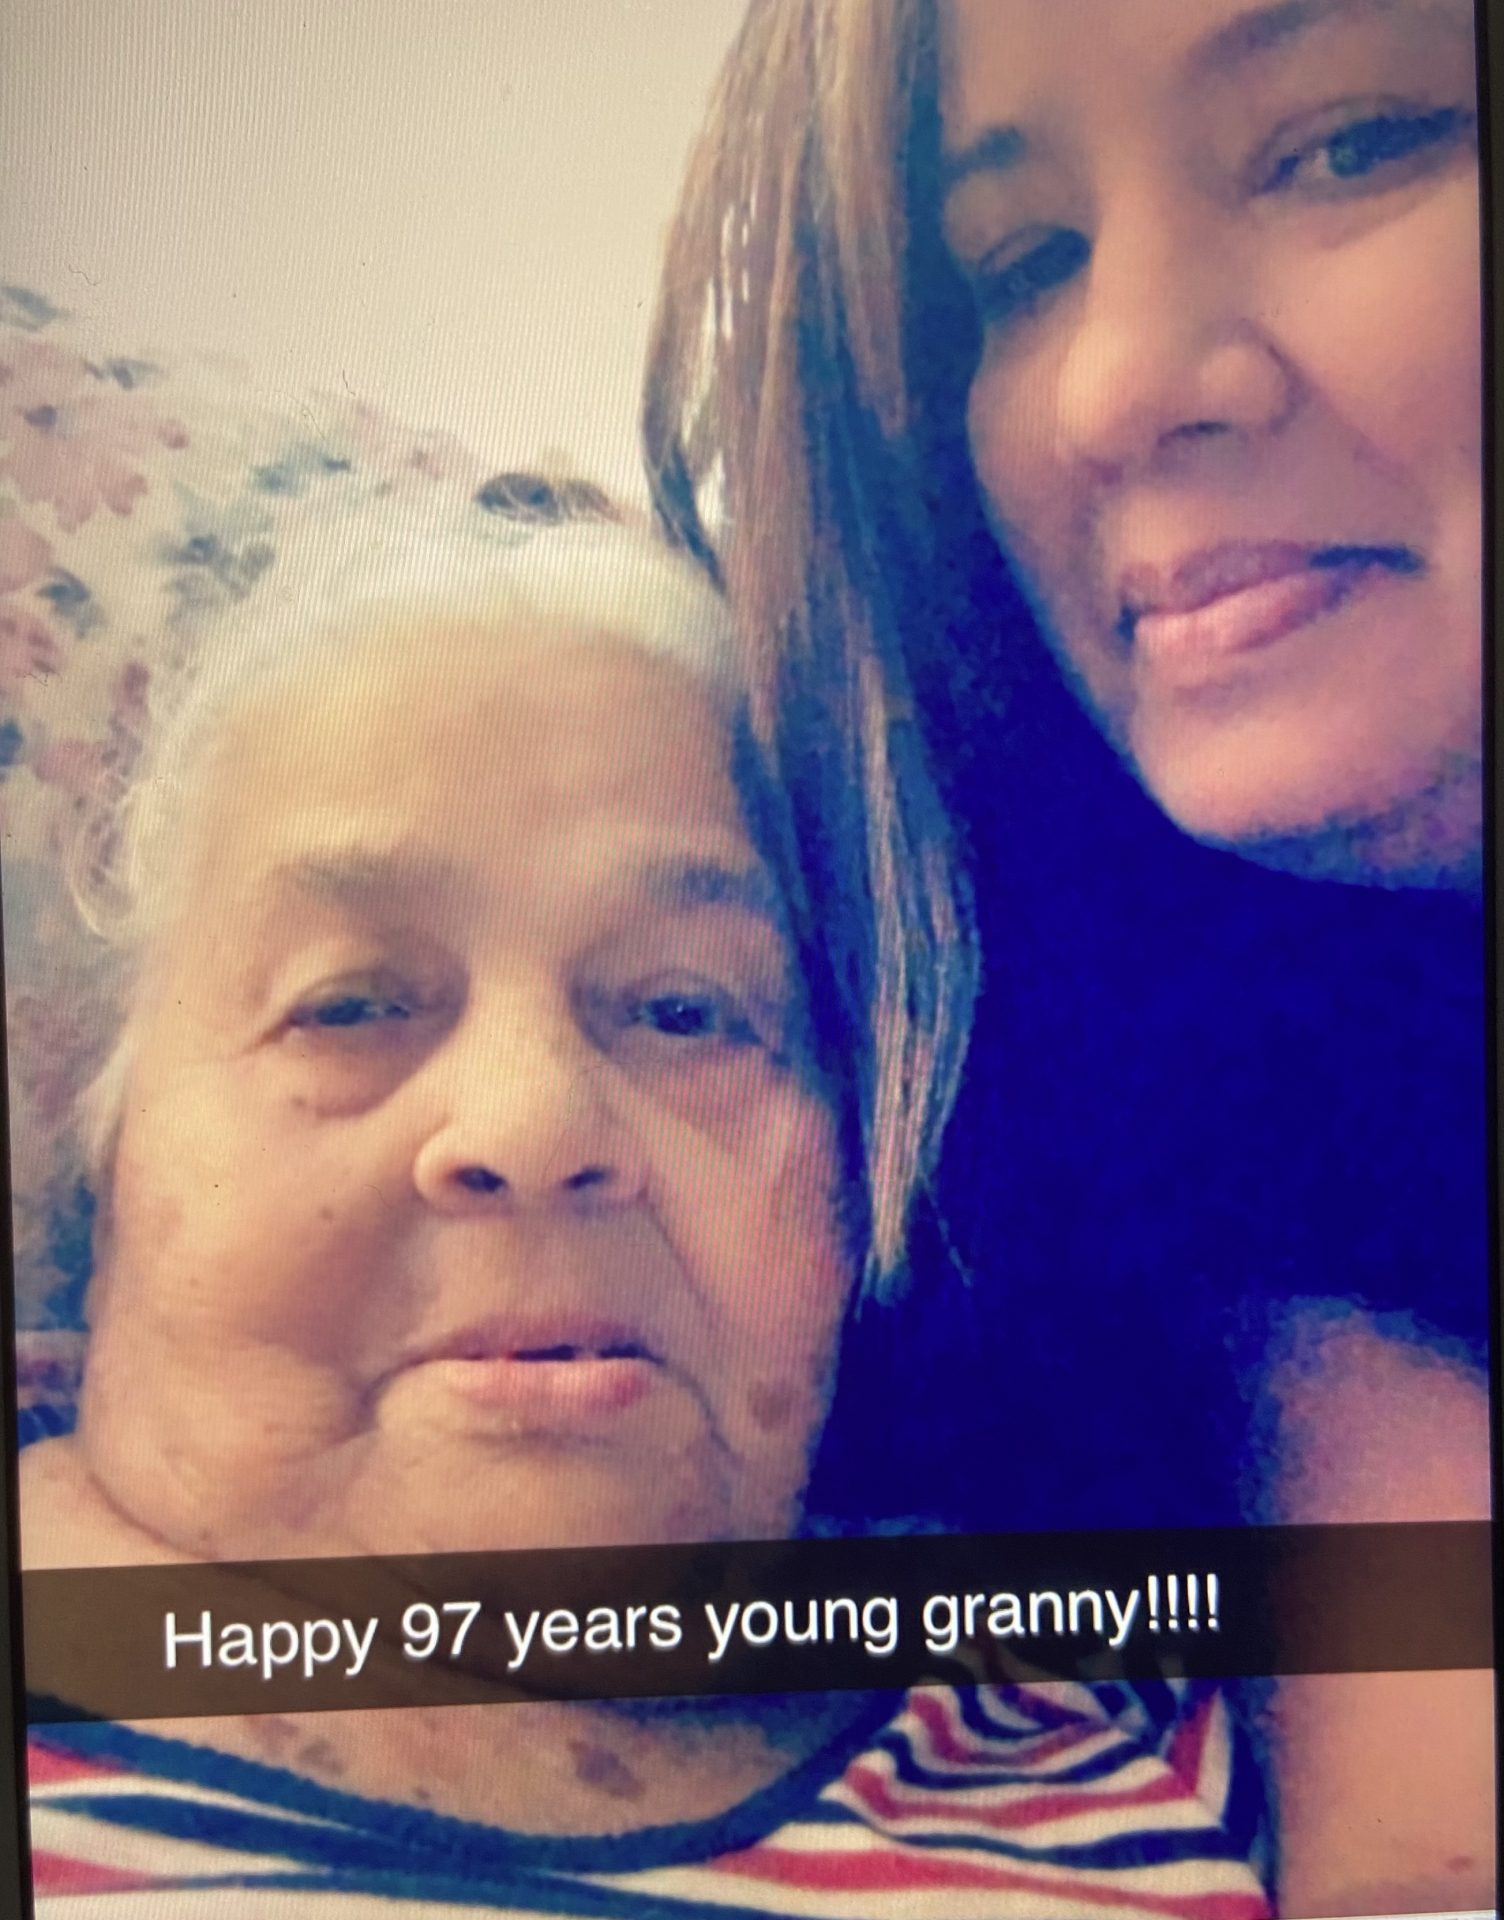 Grandma when I celebrated your 97th birthday, I never imagine that it would be the last one.. I miss you so much and I was so honor to be your granddaughter !!